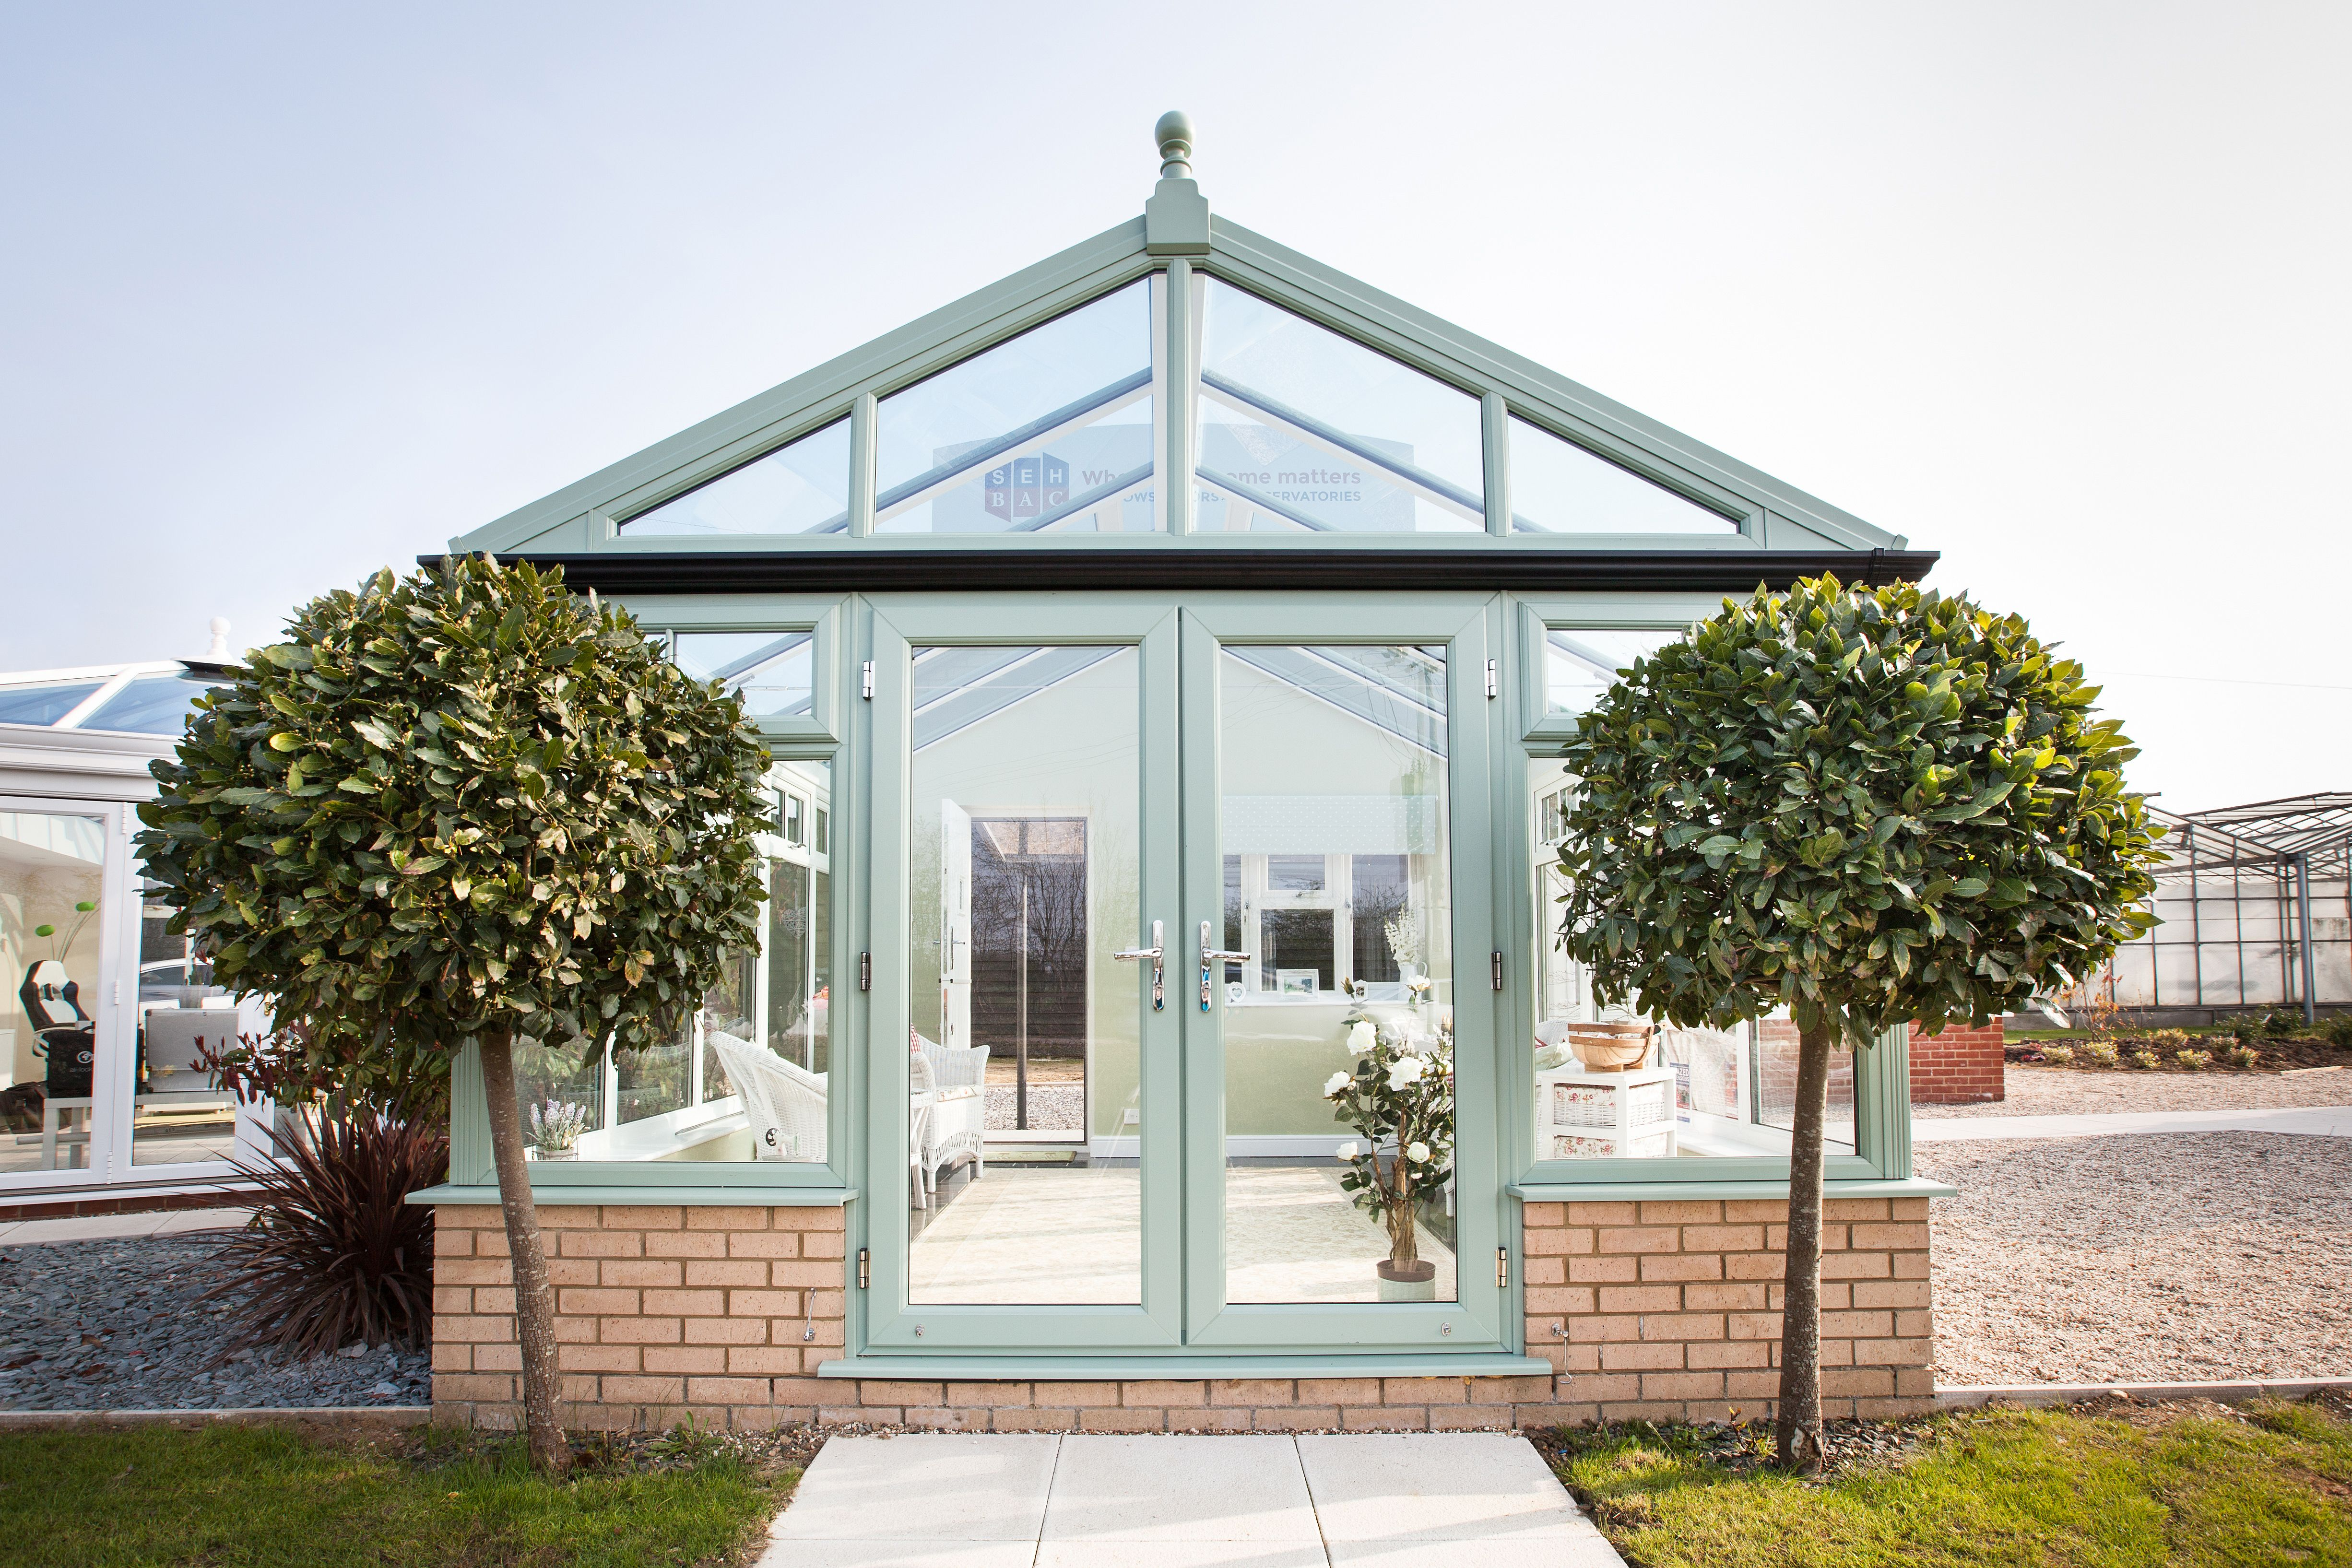 SEH BAC Showcentre Marks Tey Conservatory, House goals